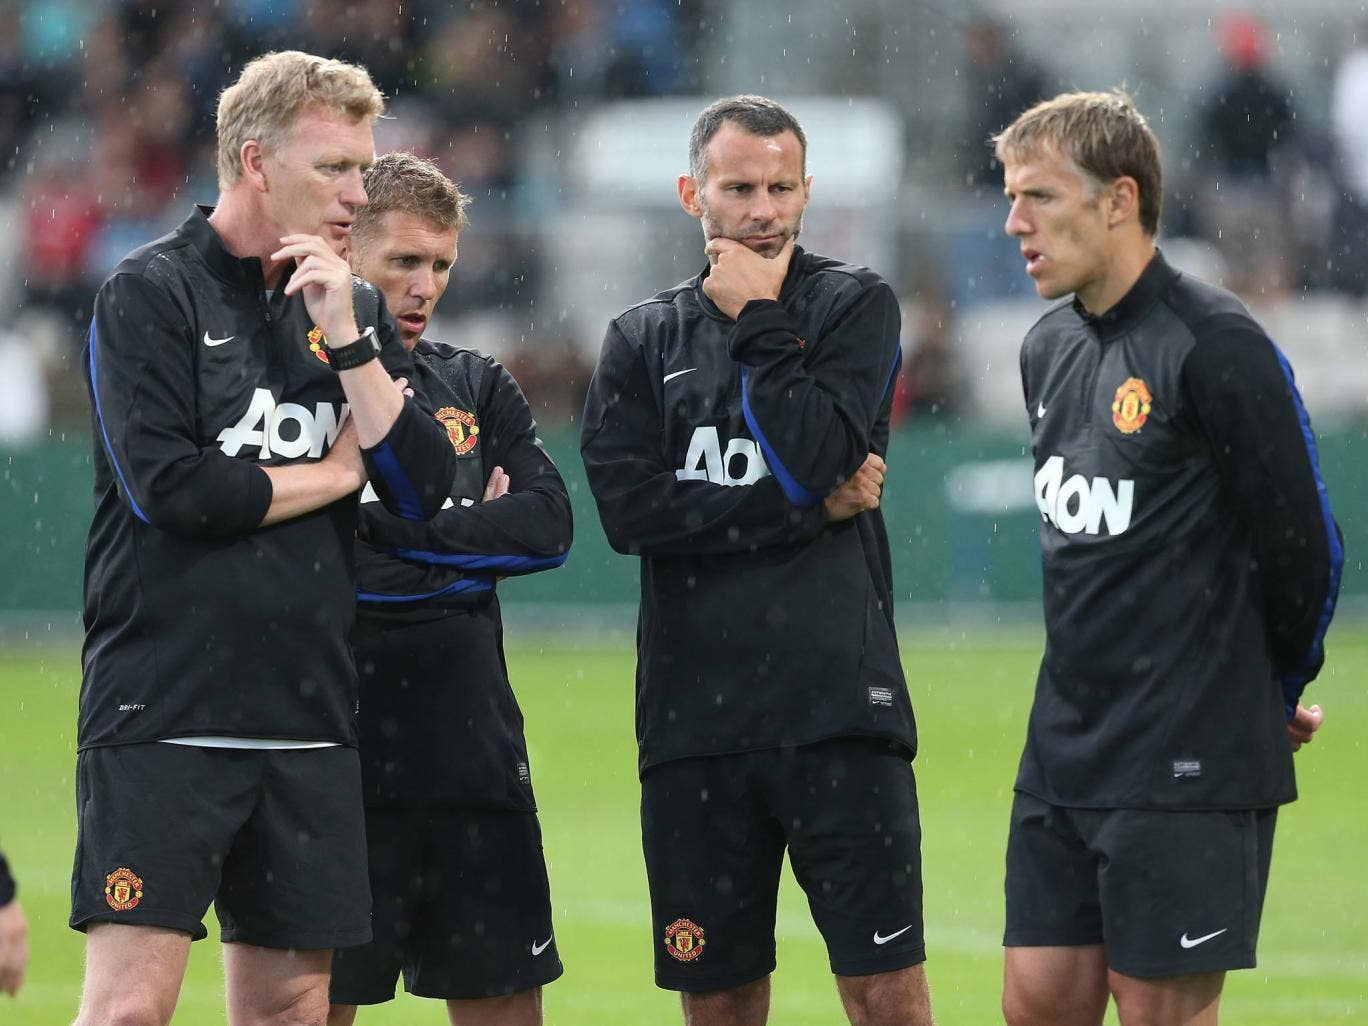 Manager David Moyes of Manchester United speaks to Assistant Manager Steve Round, Ryan Giggs and Coach Phil Neville